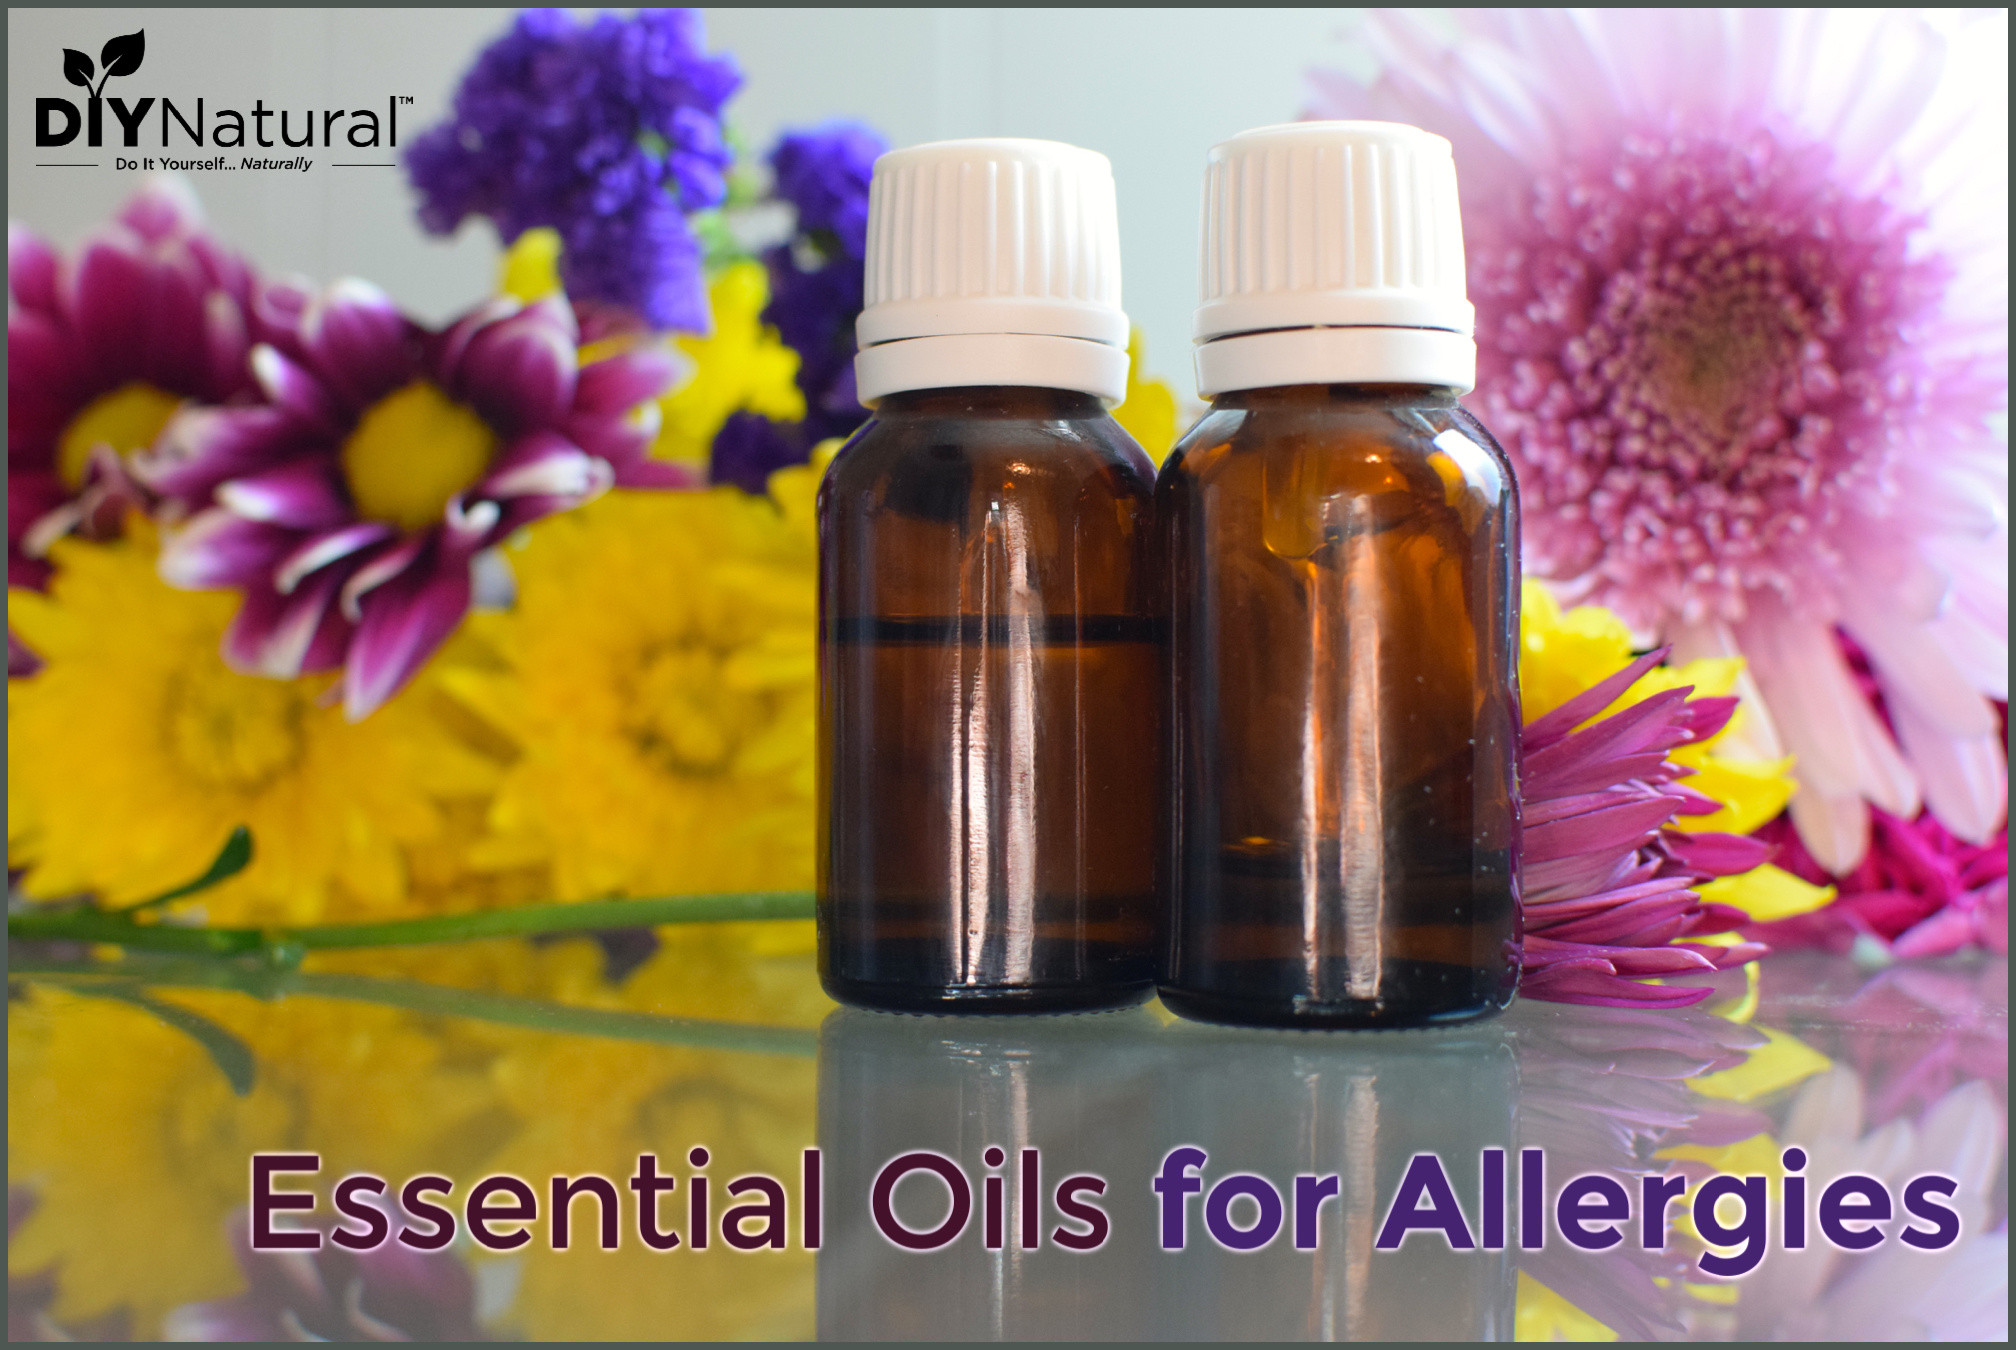 Essential Oils For Allergies Recipe Blends For Inhalers And Diffusers